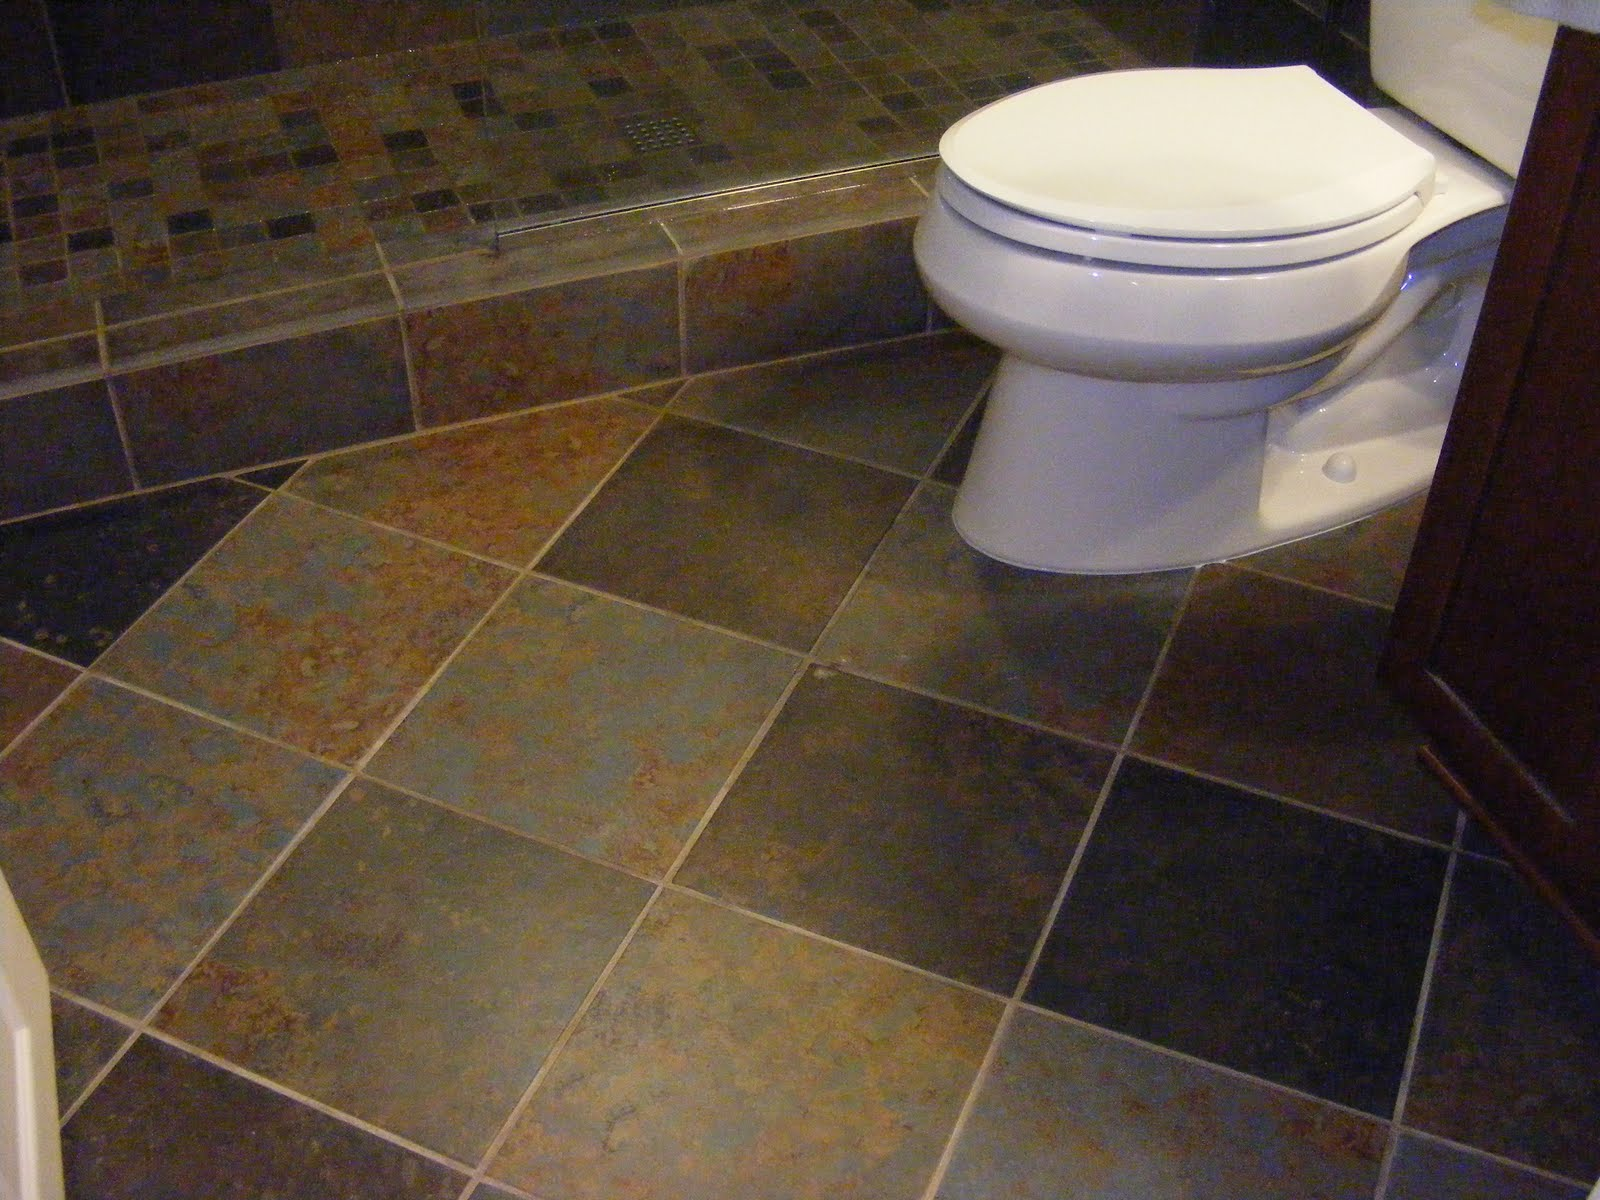 designs tile patterns ceramic lowes bathroom for floor layout small bathrooms porcelain ideas